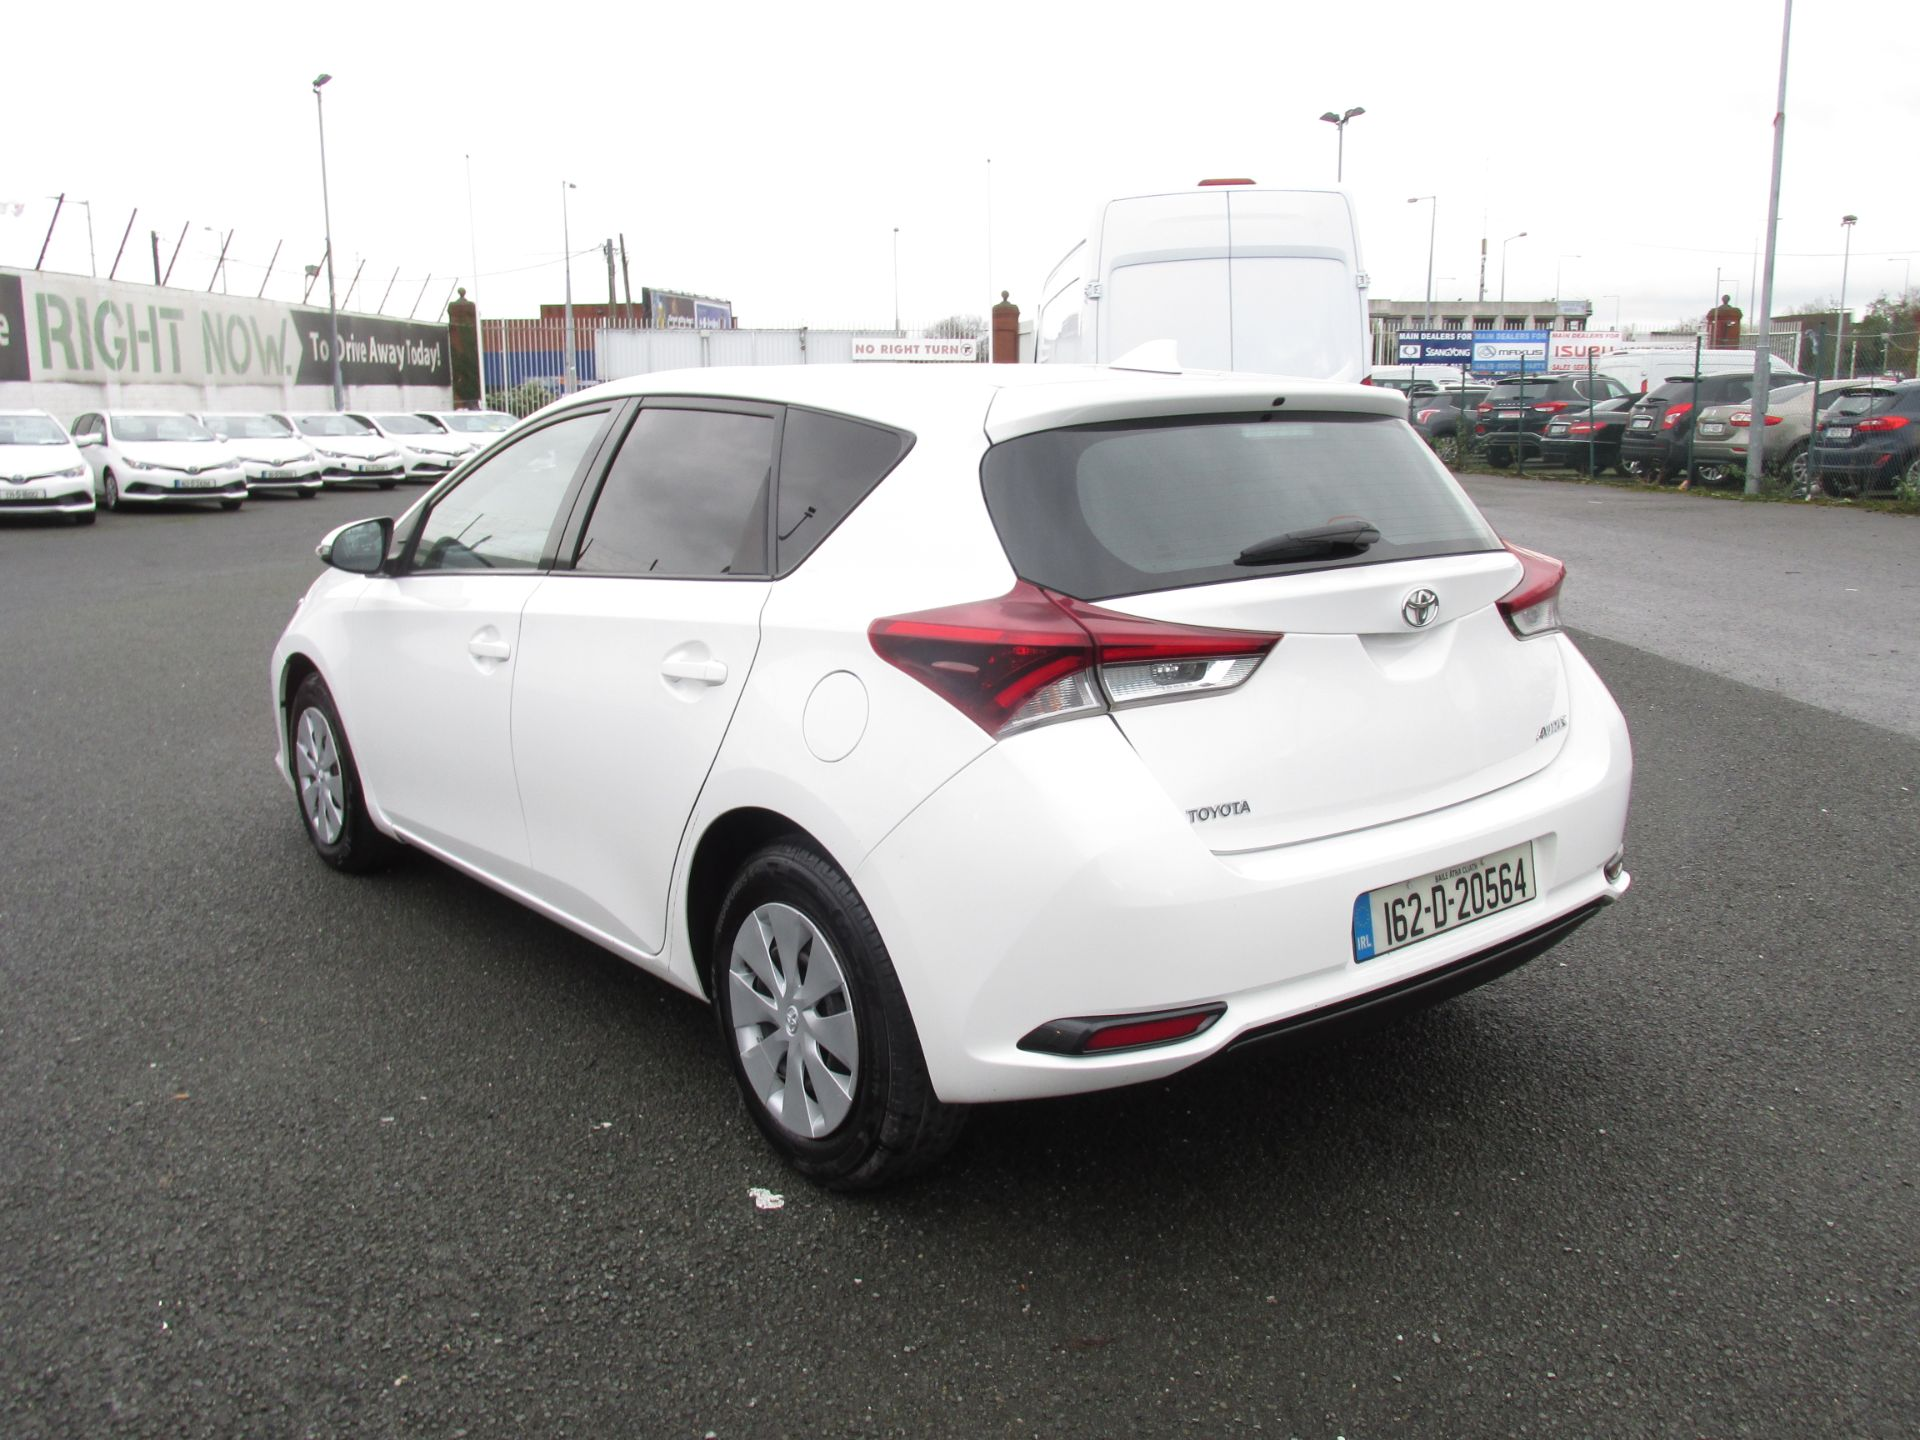 2016 Toyota Auris 1.4d-4d Terra 4DR click and deliver call sales for more info (162D20564) Image 5